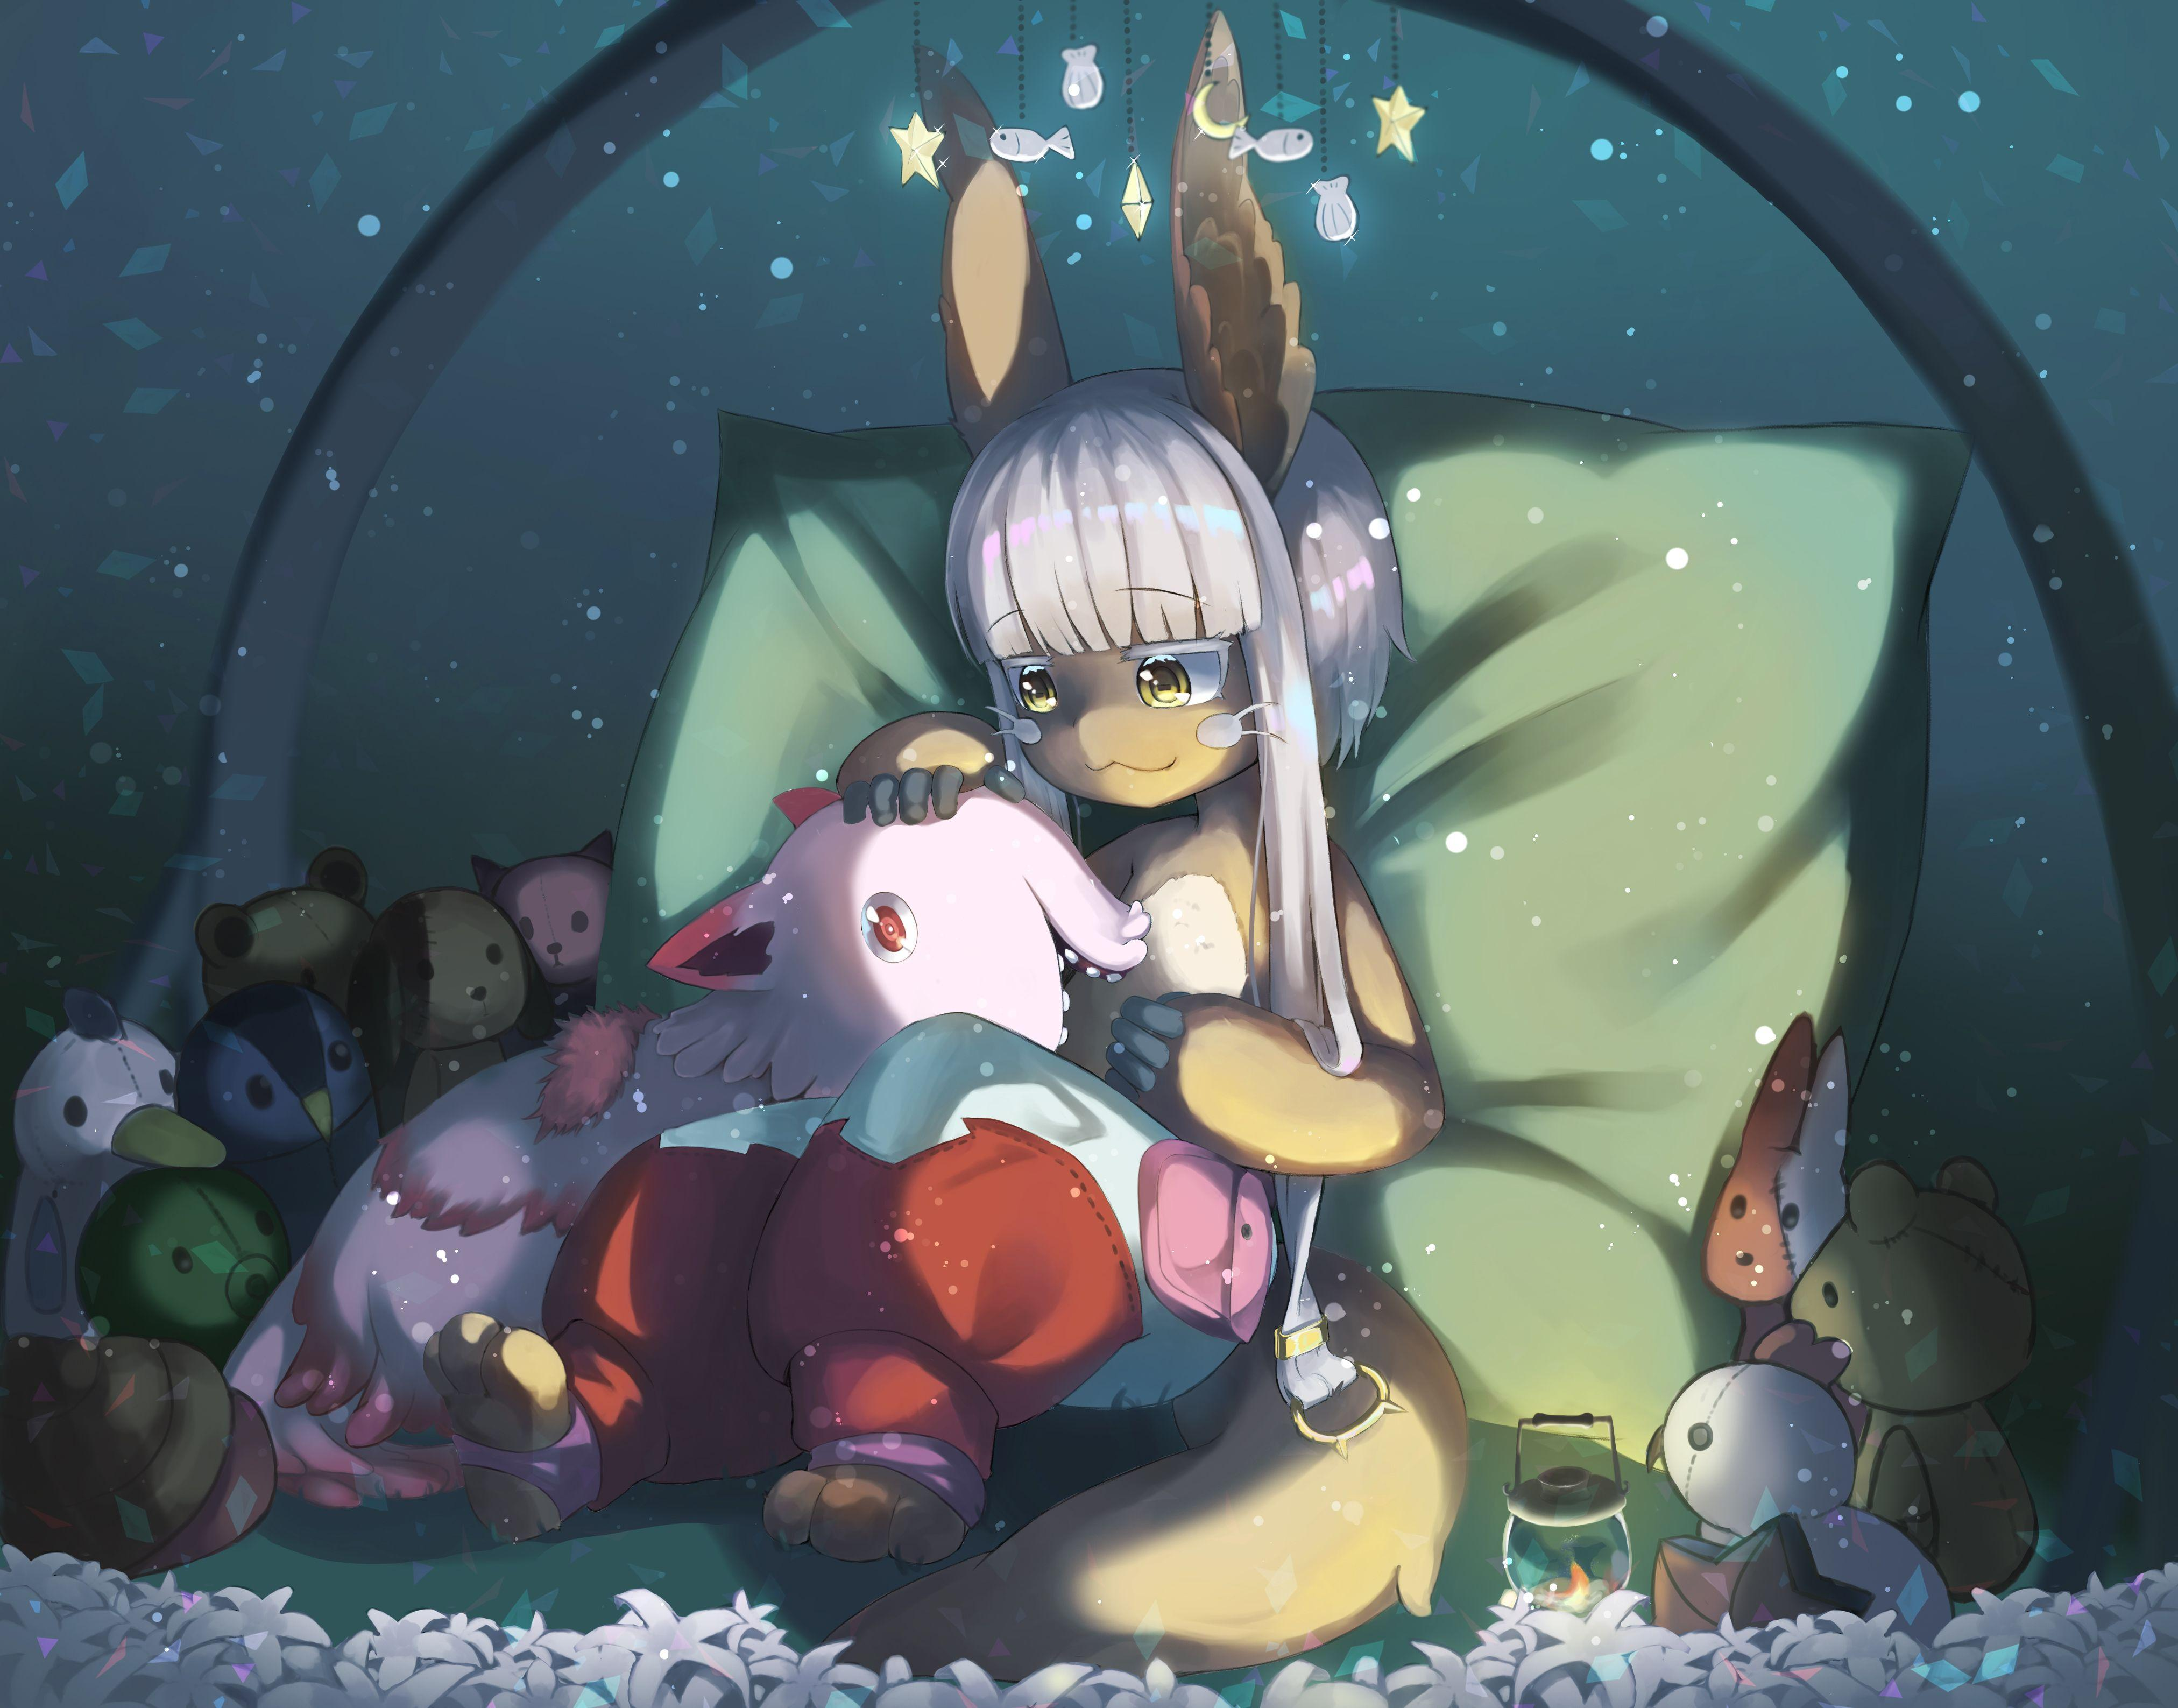 Wallpapers : Made in Abyss, Nanachi Made in Abyss, Mitty Made in